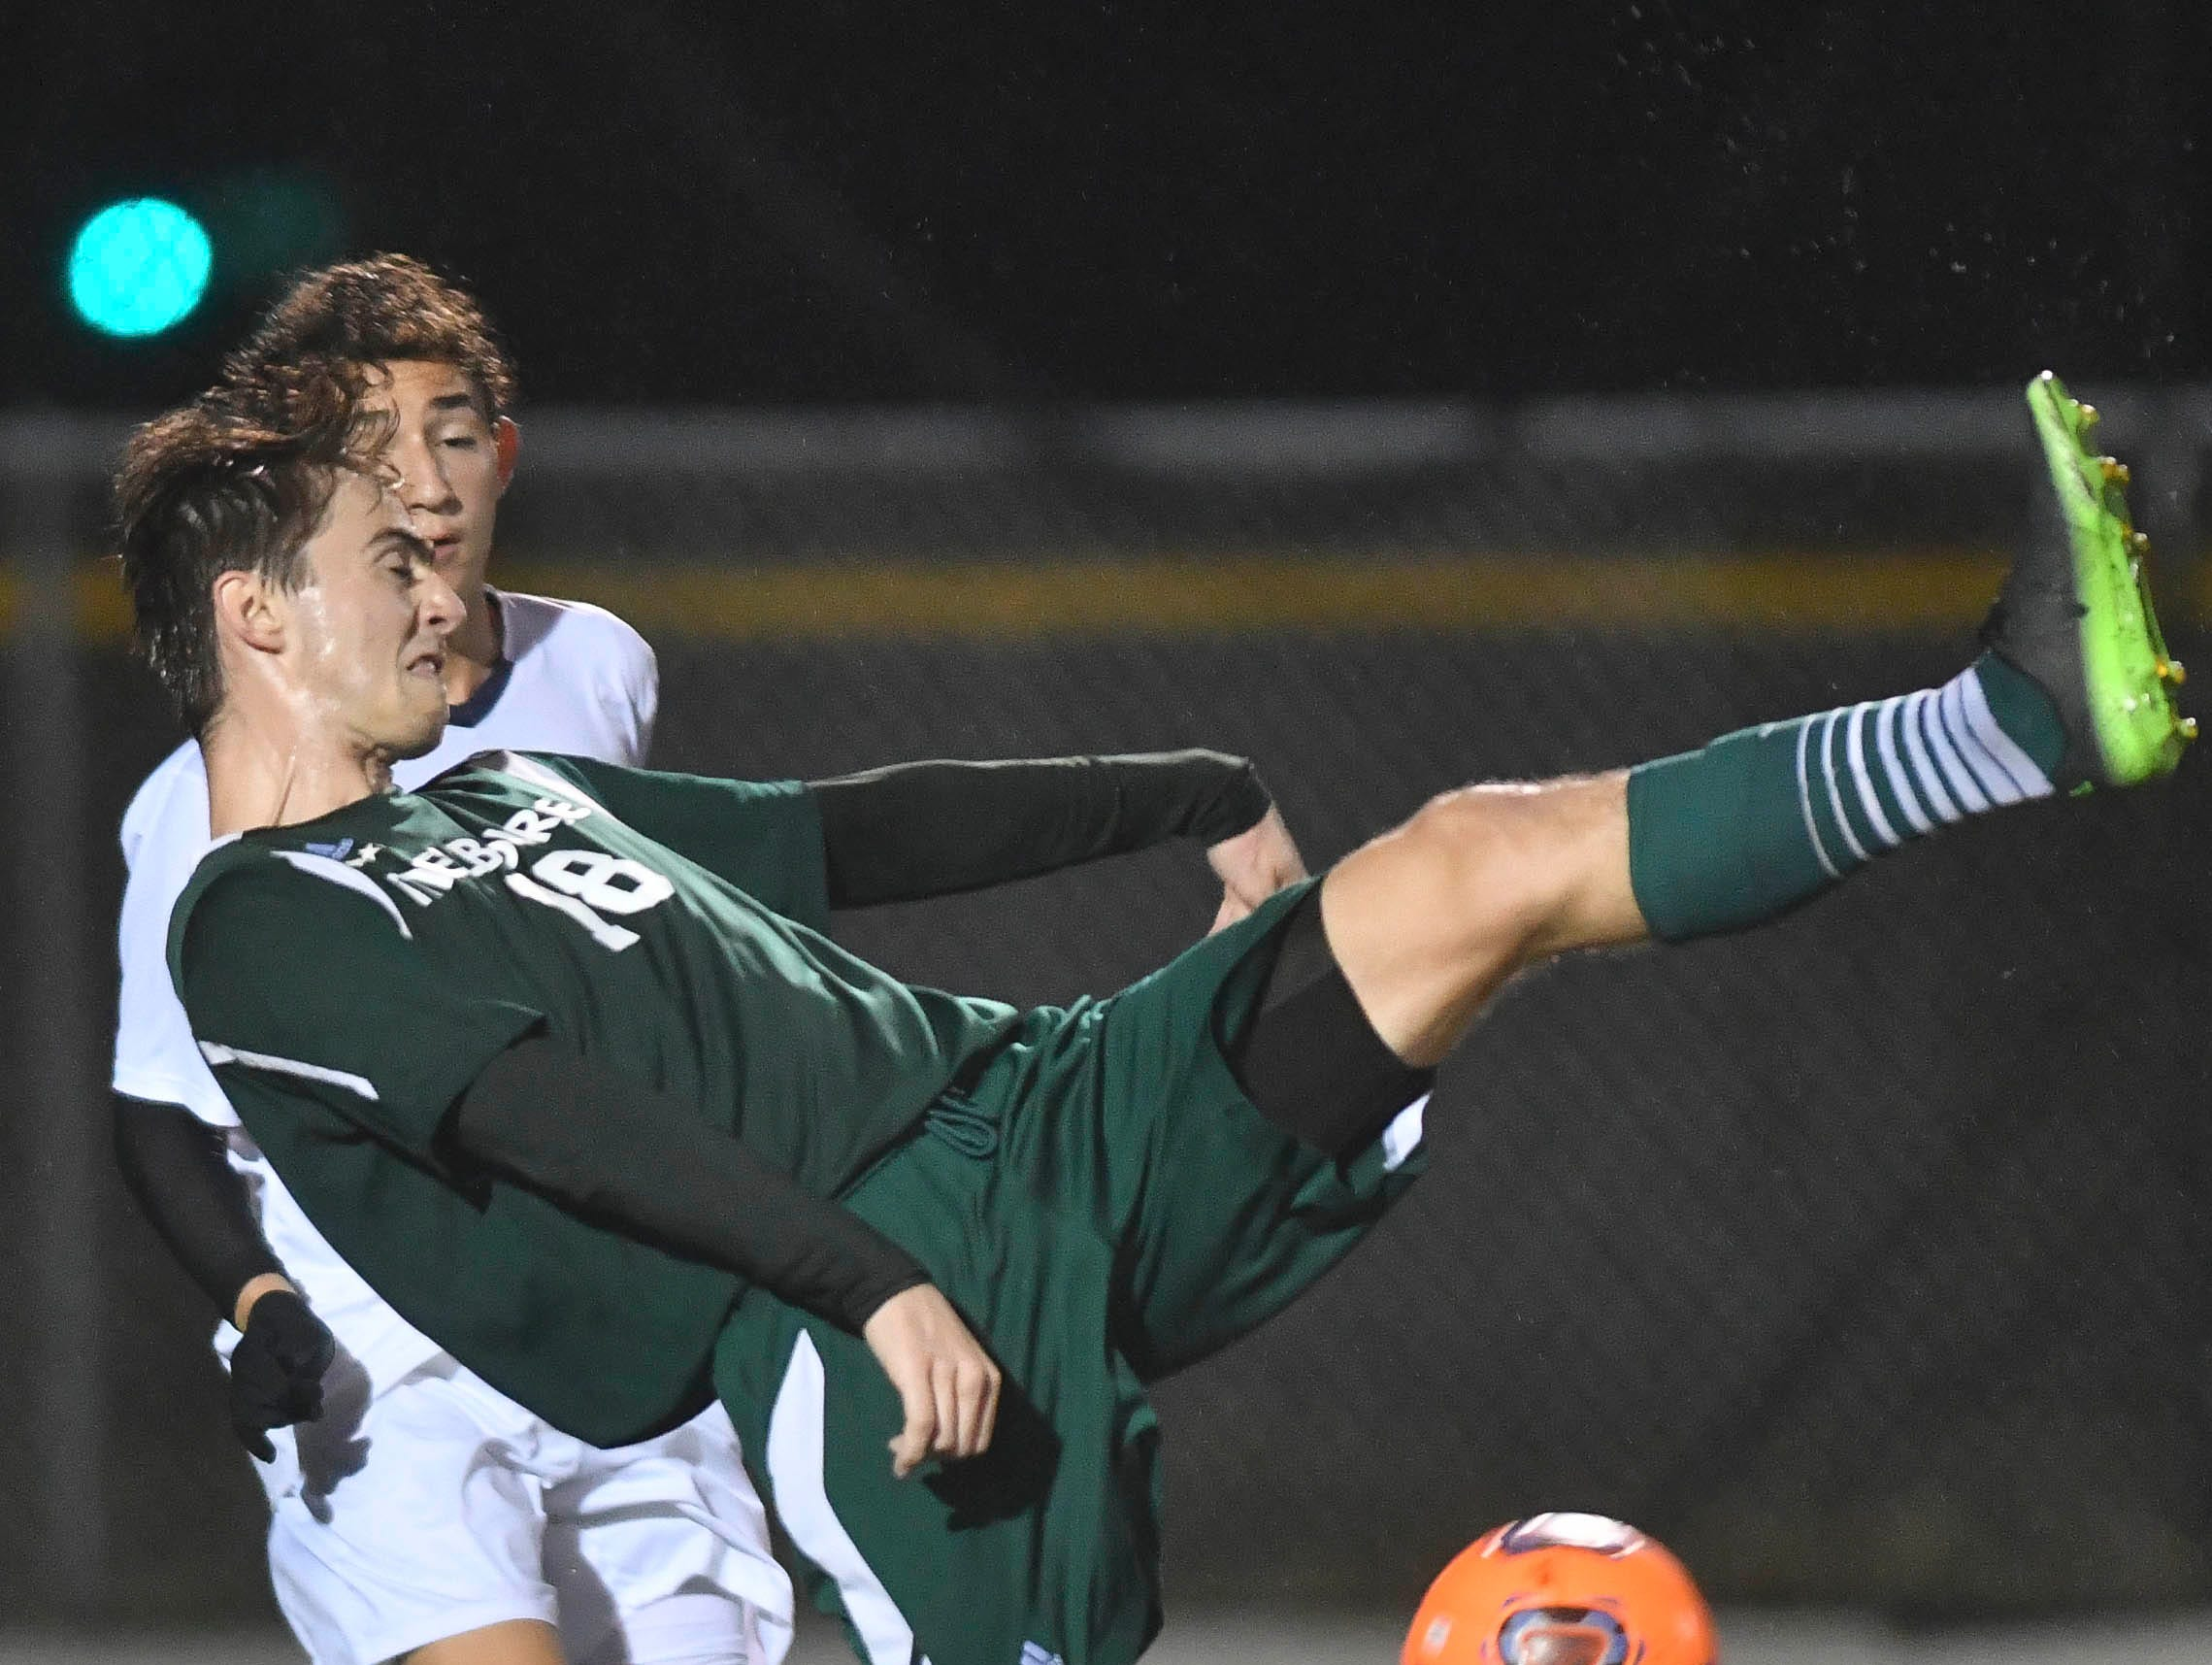 Melbourne's Cooper Bywater tries to bicycle kick the ball during Saturday's Class 4A boys soccer regional semifinal.